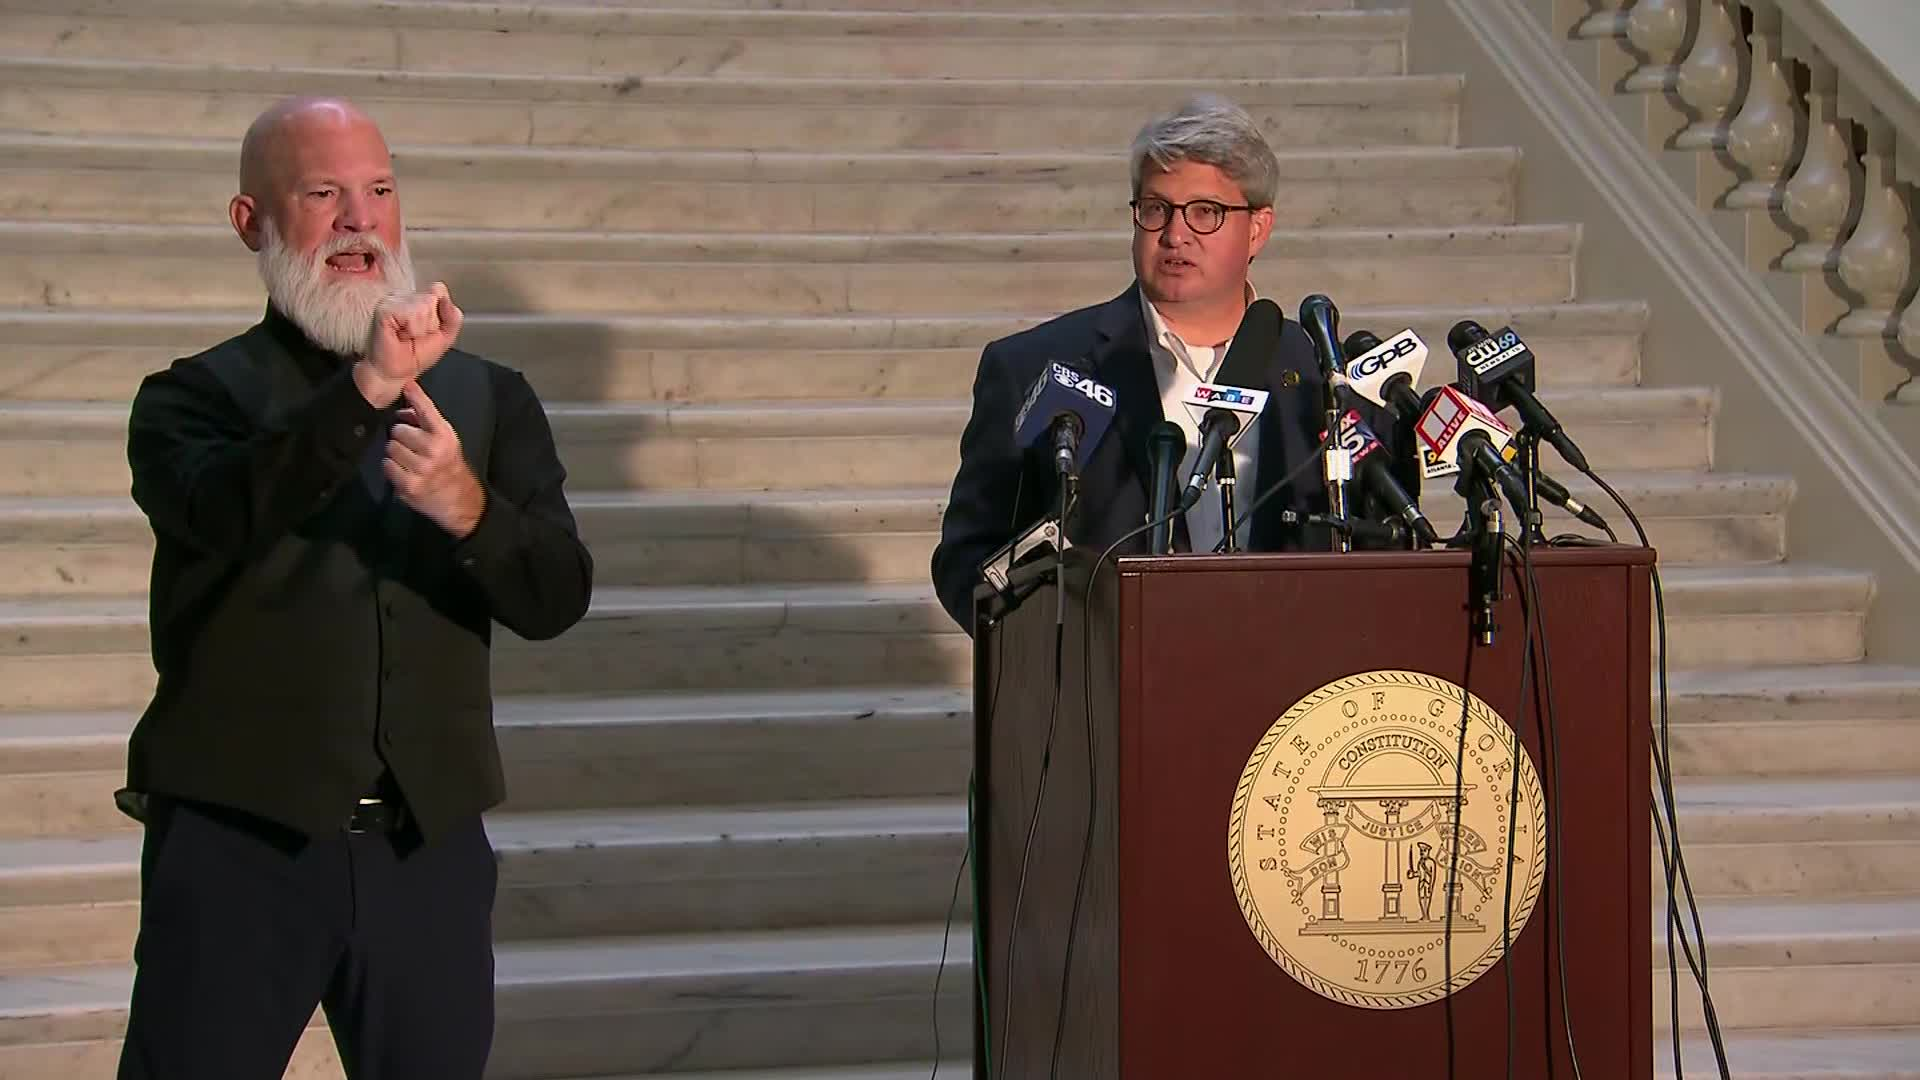 Georgia's Voting Implementation Manager Gabriel Sterling, right, speaks during a press conference in Atlanta on November 9.